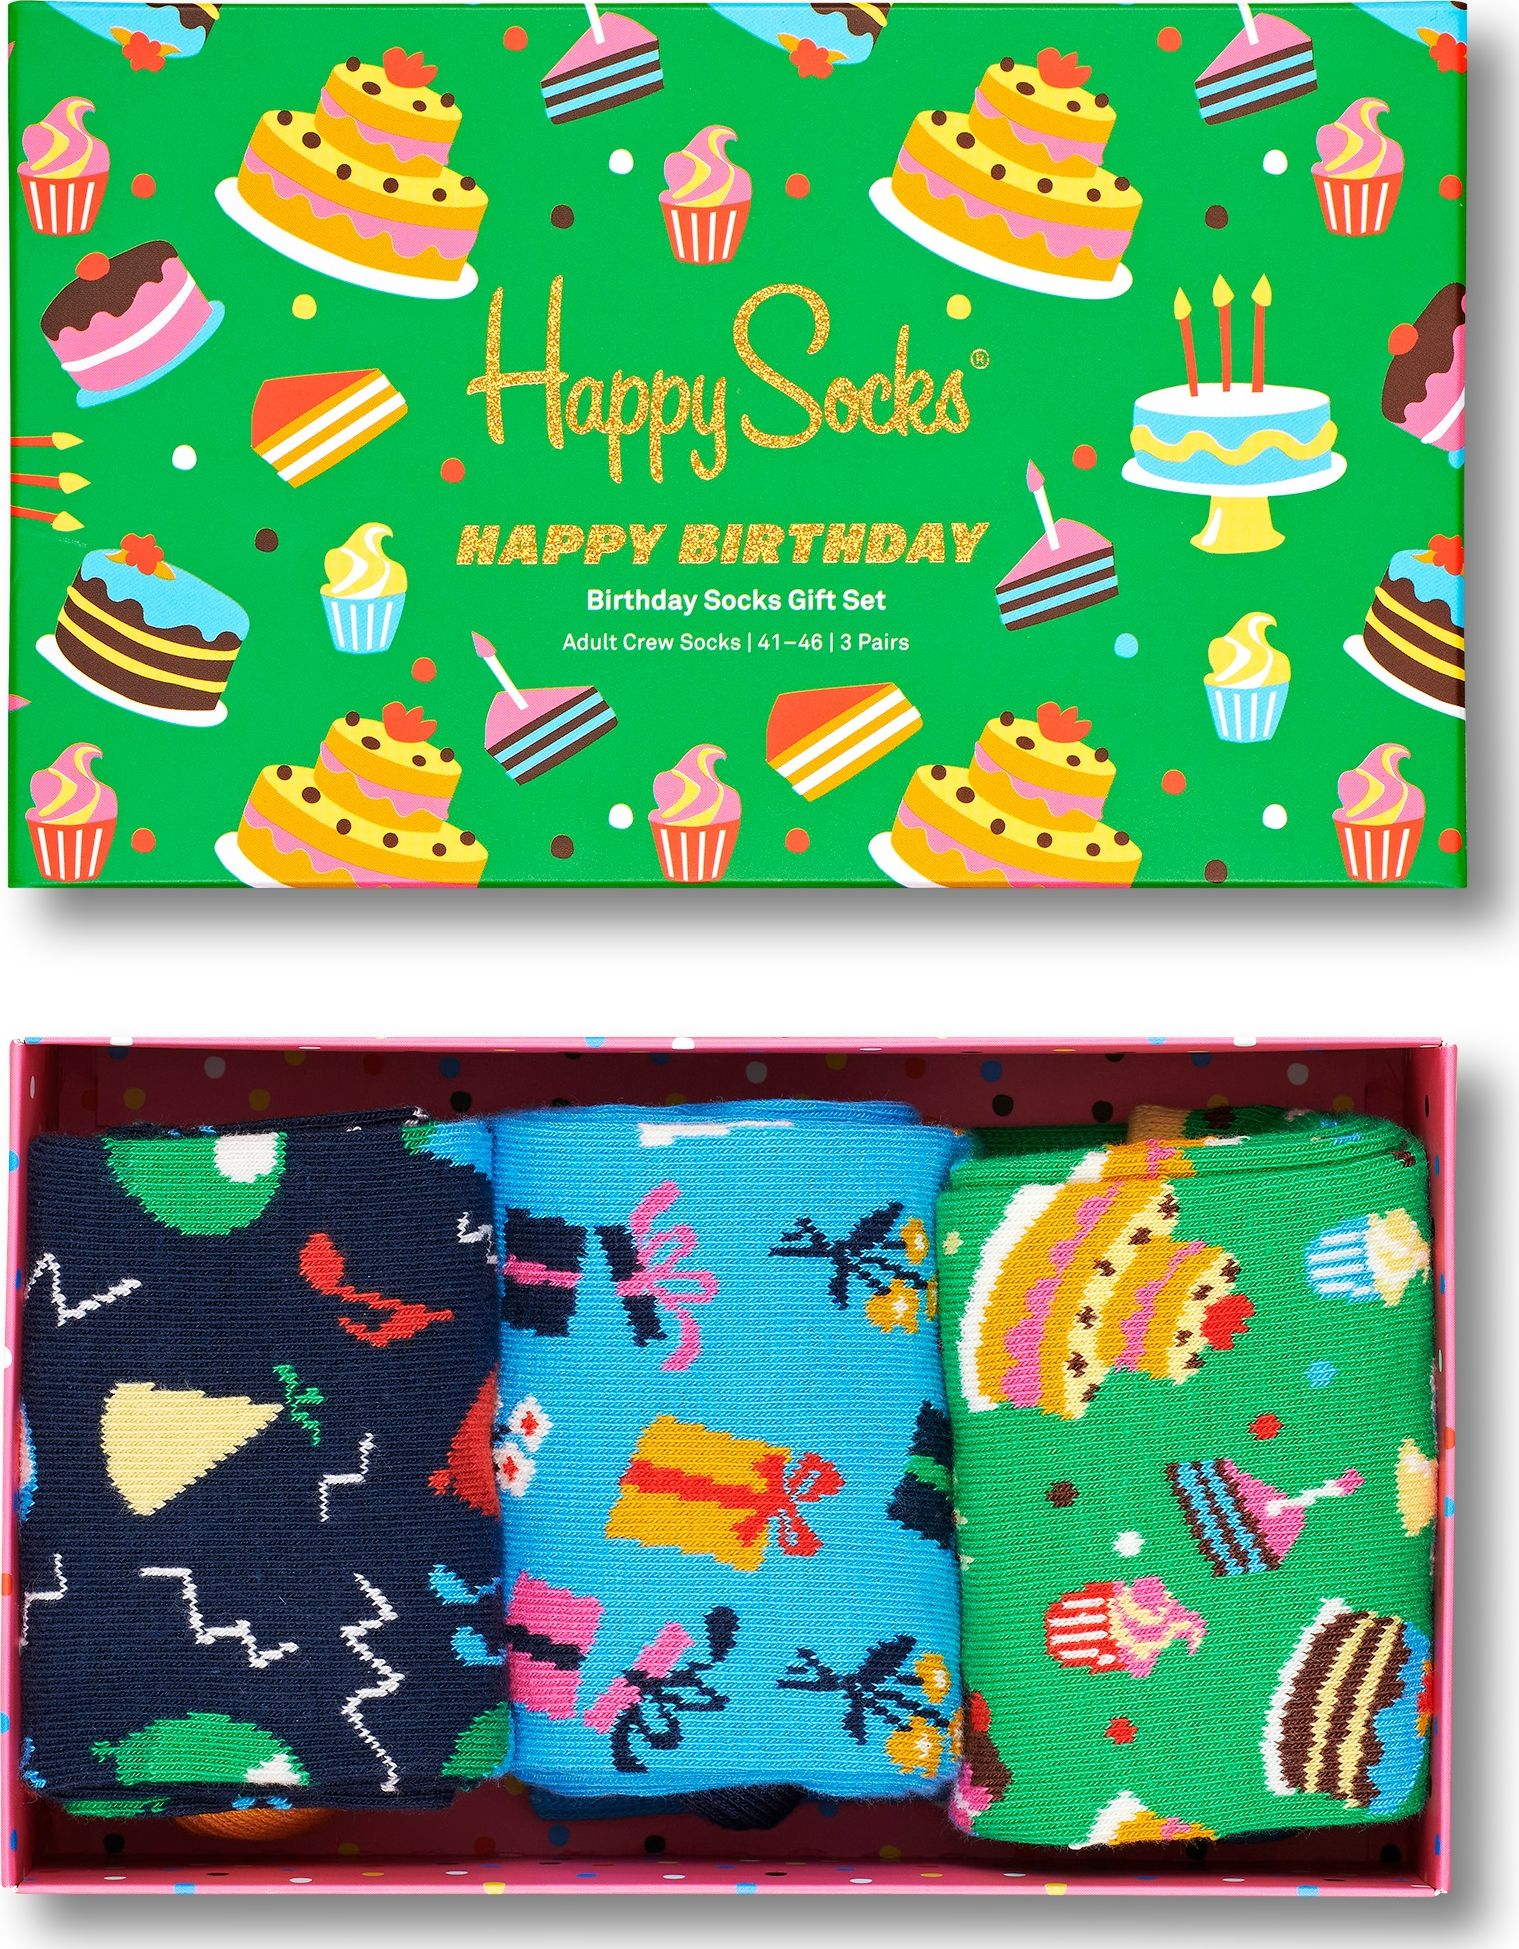 Happy Socks 3-Pack Happy Birthday Socks Gift Set Multi 0100 36-40